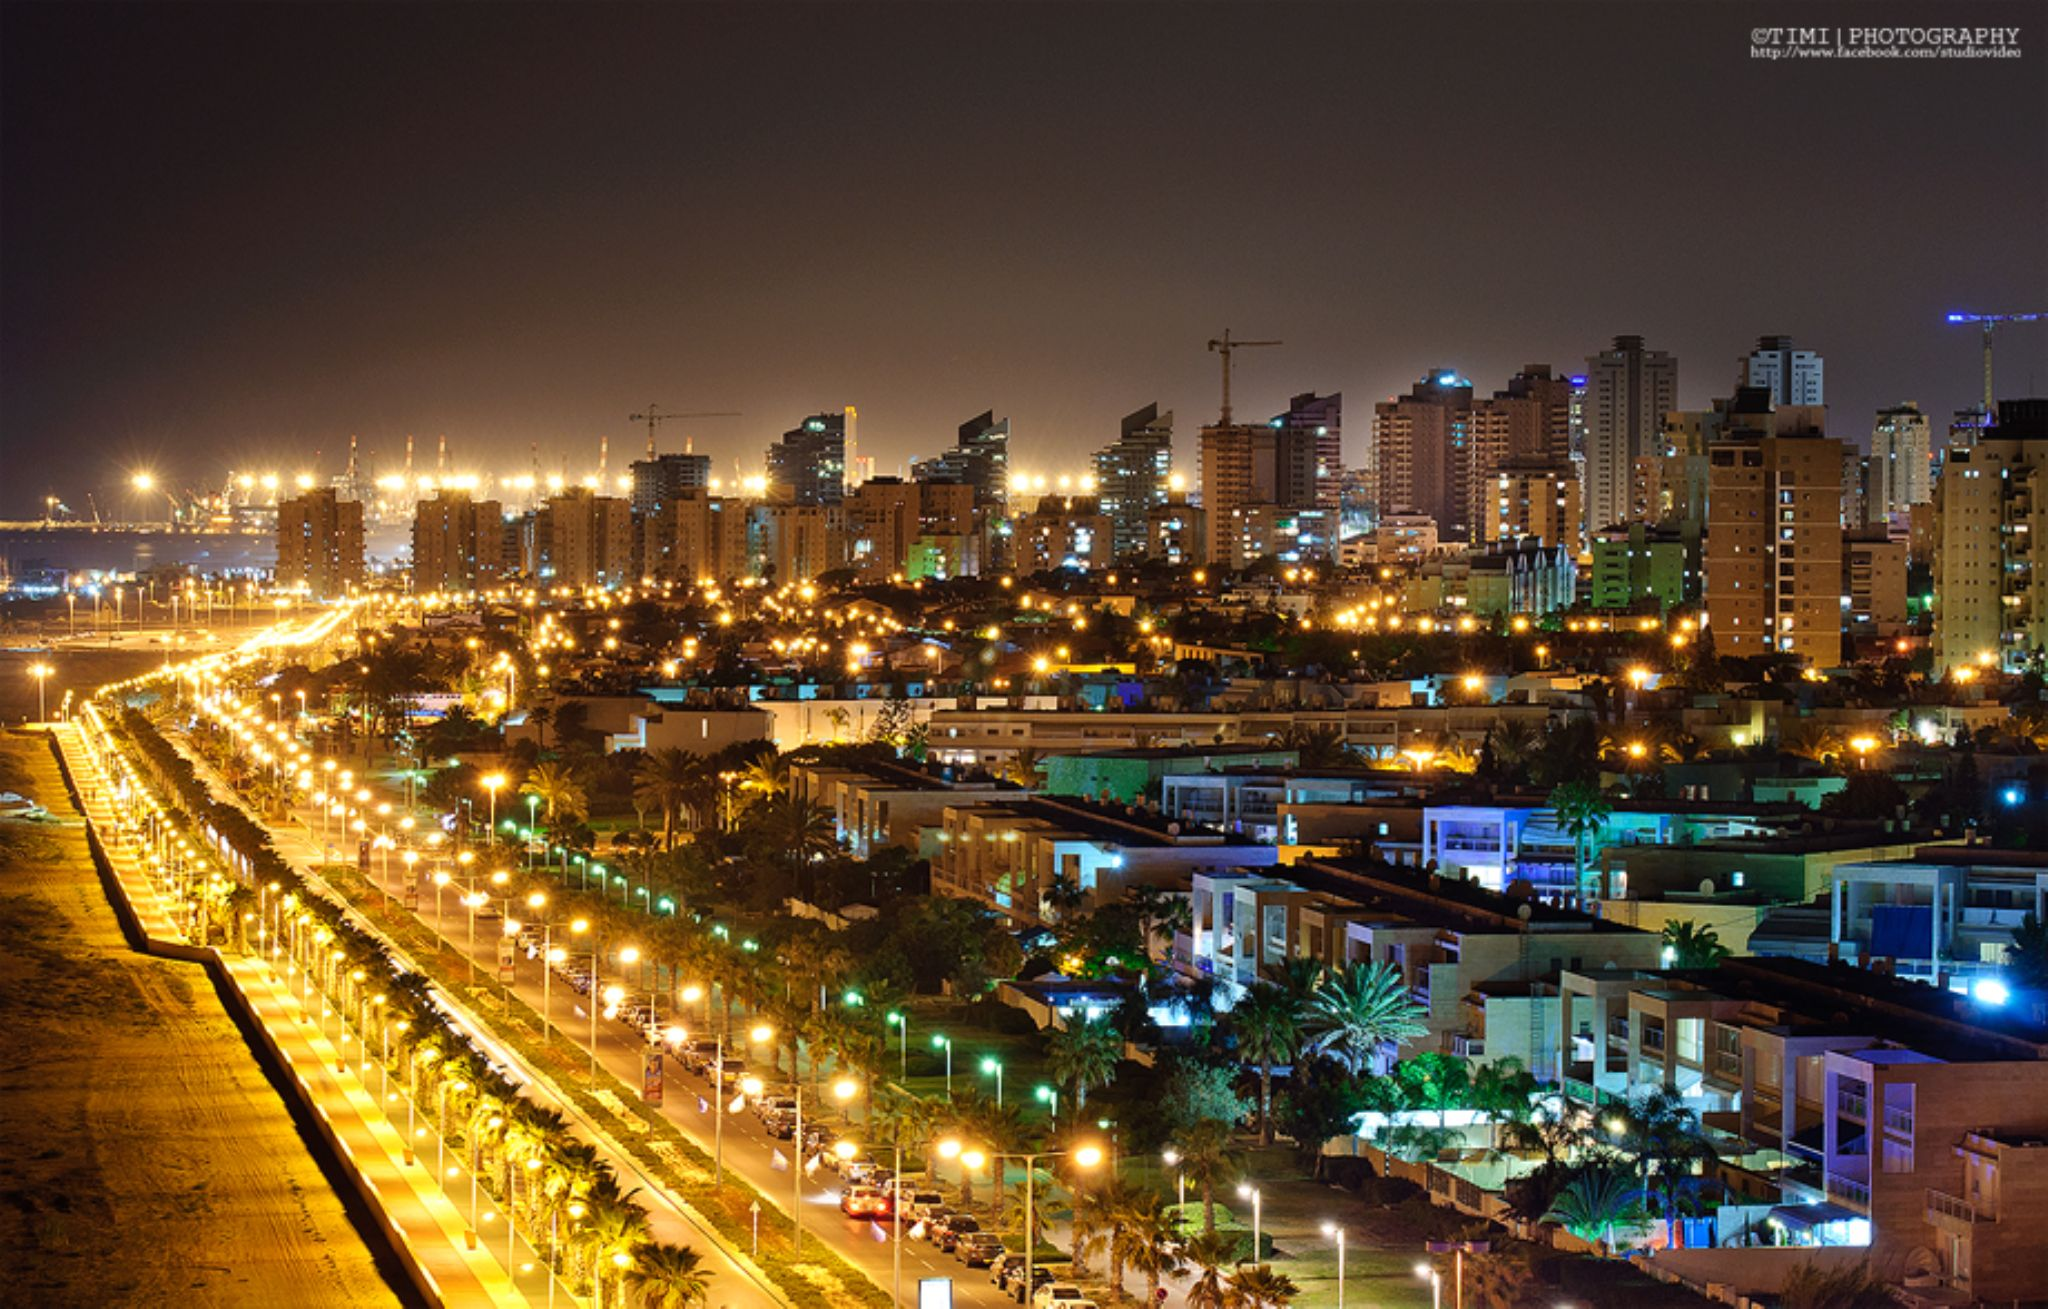 My city at night by TimiPhotographer